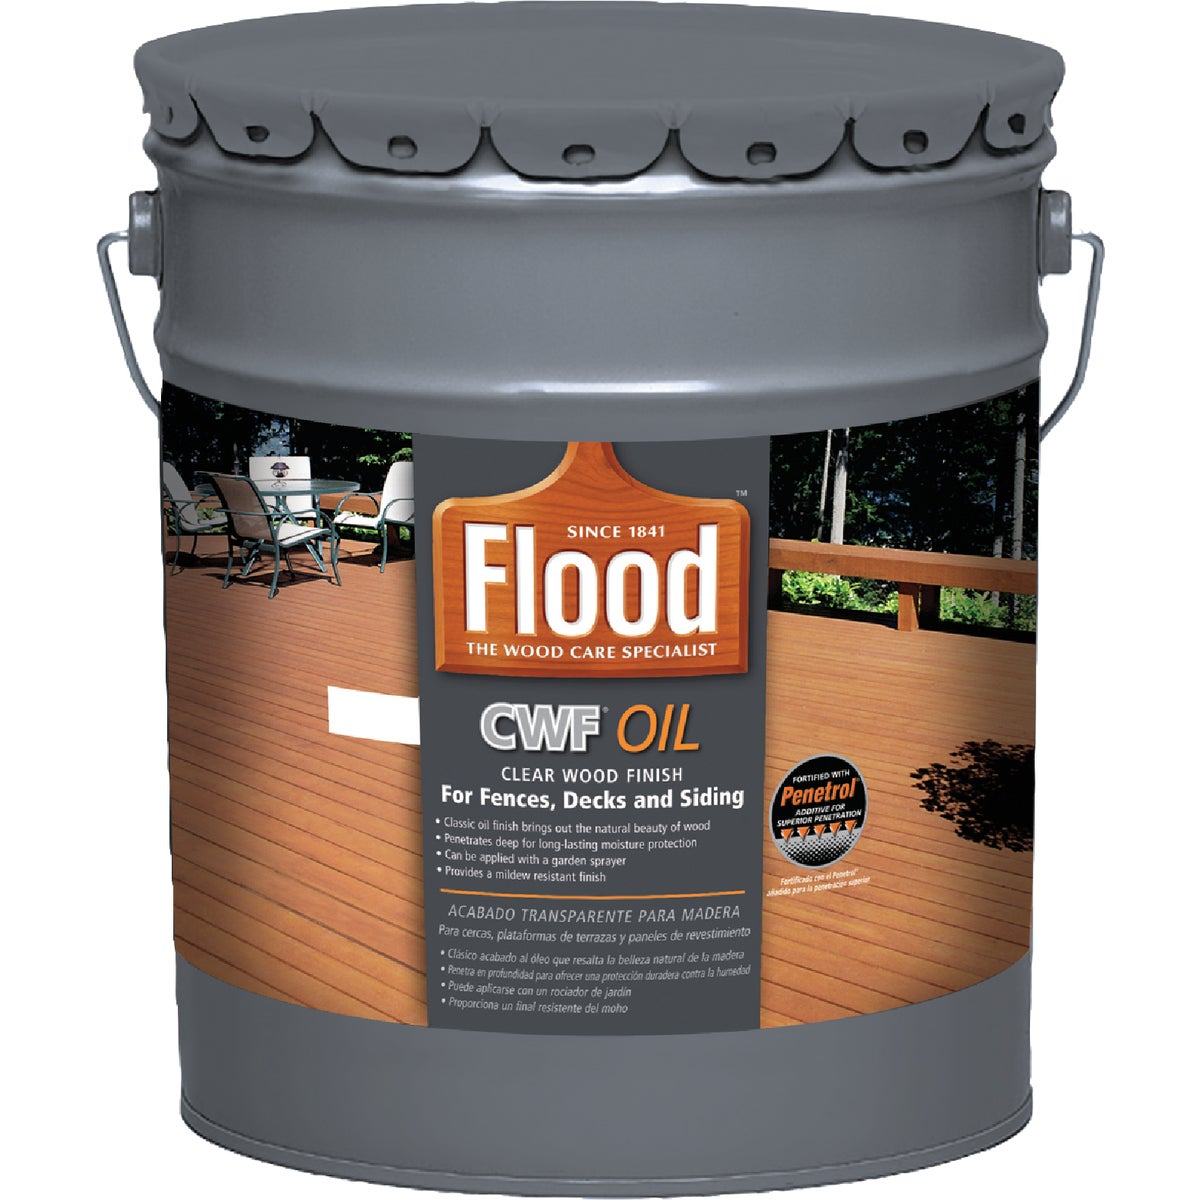 CWF CLEAR WOOD FINISH - FLD447 05 by Akzo Nobel Coatings